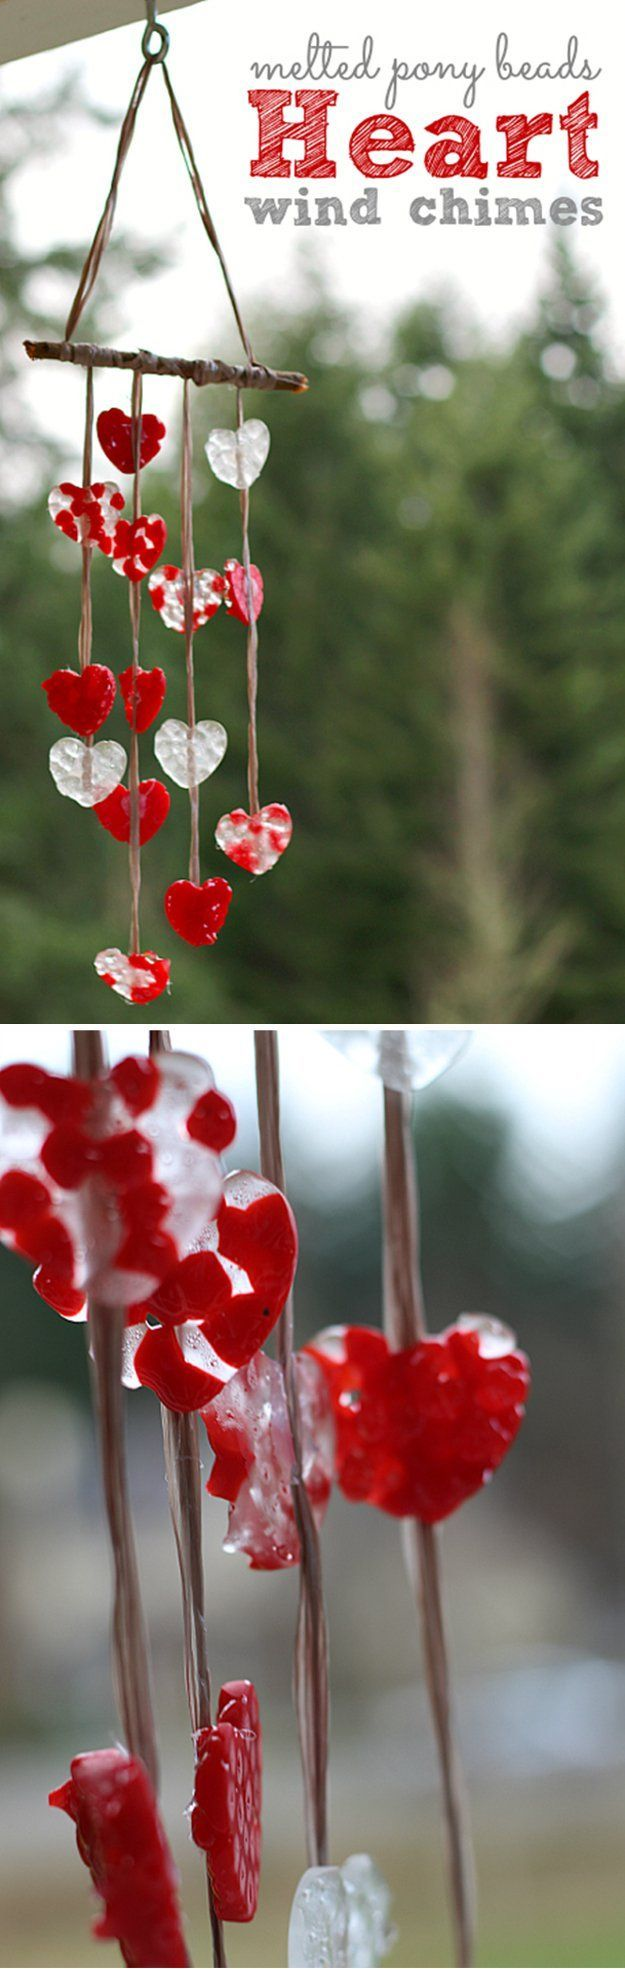 How to Make Beautiful DIY Wind Chime with Beads | Melted Bead Chimes by DIY Ready at http://diyready.com/32-diy-wind-chimes/